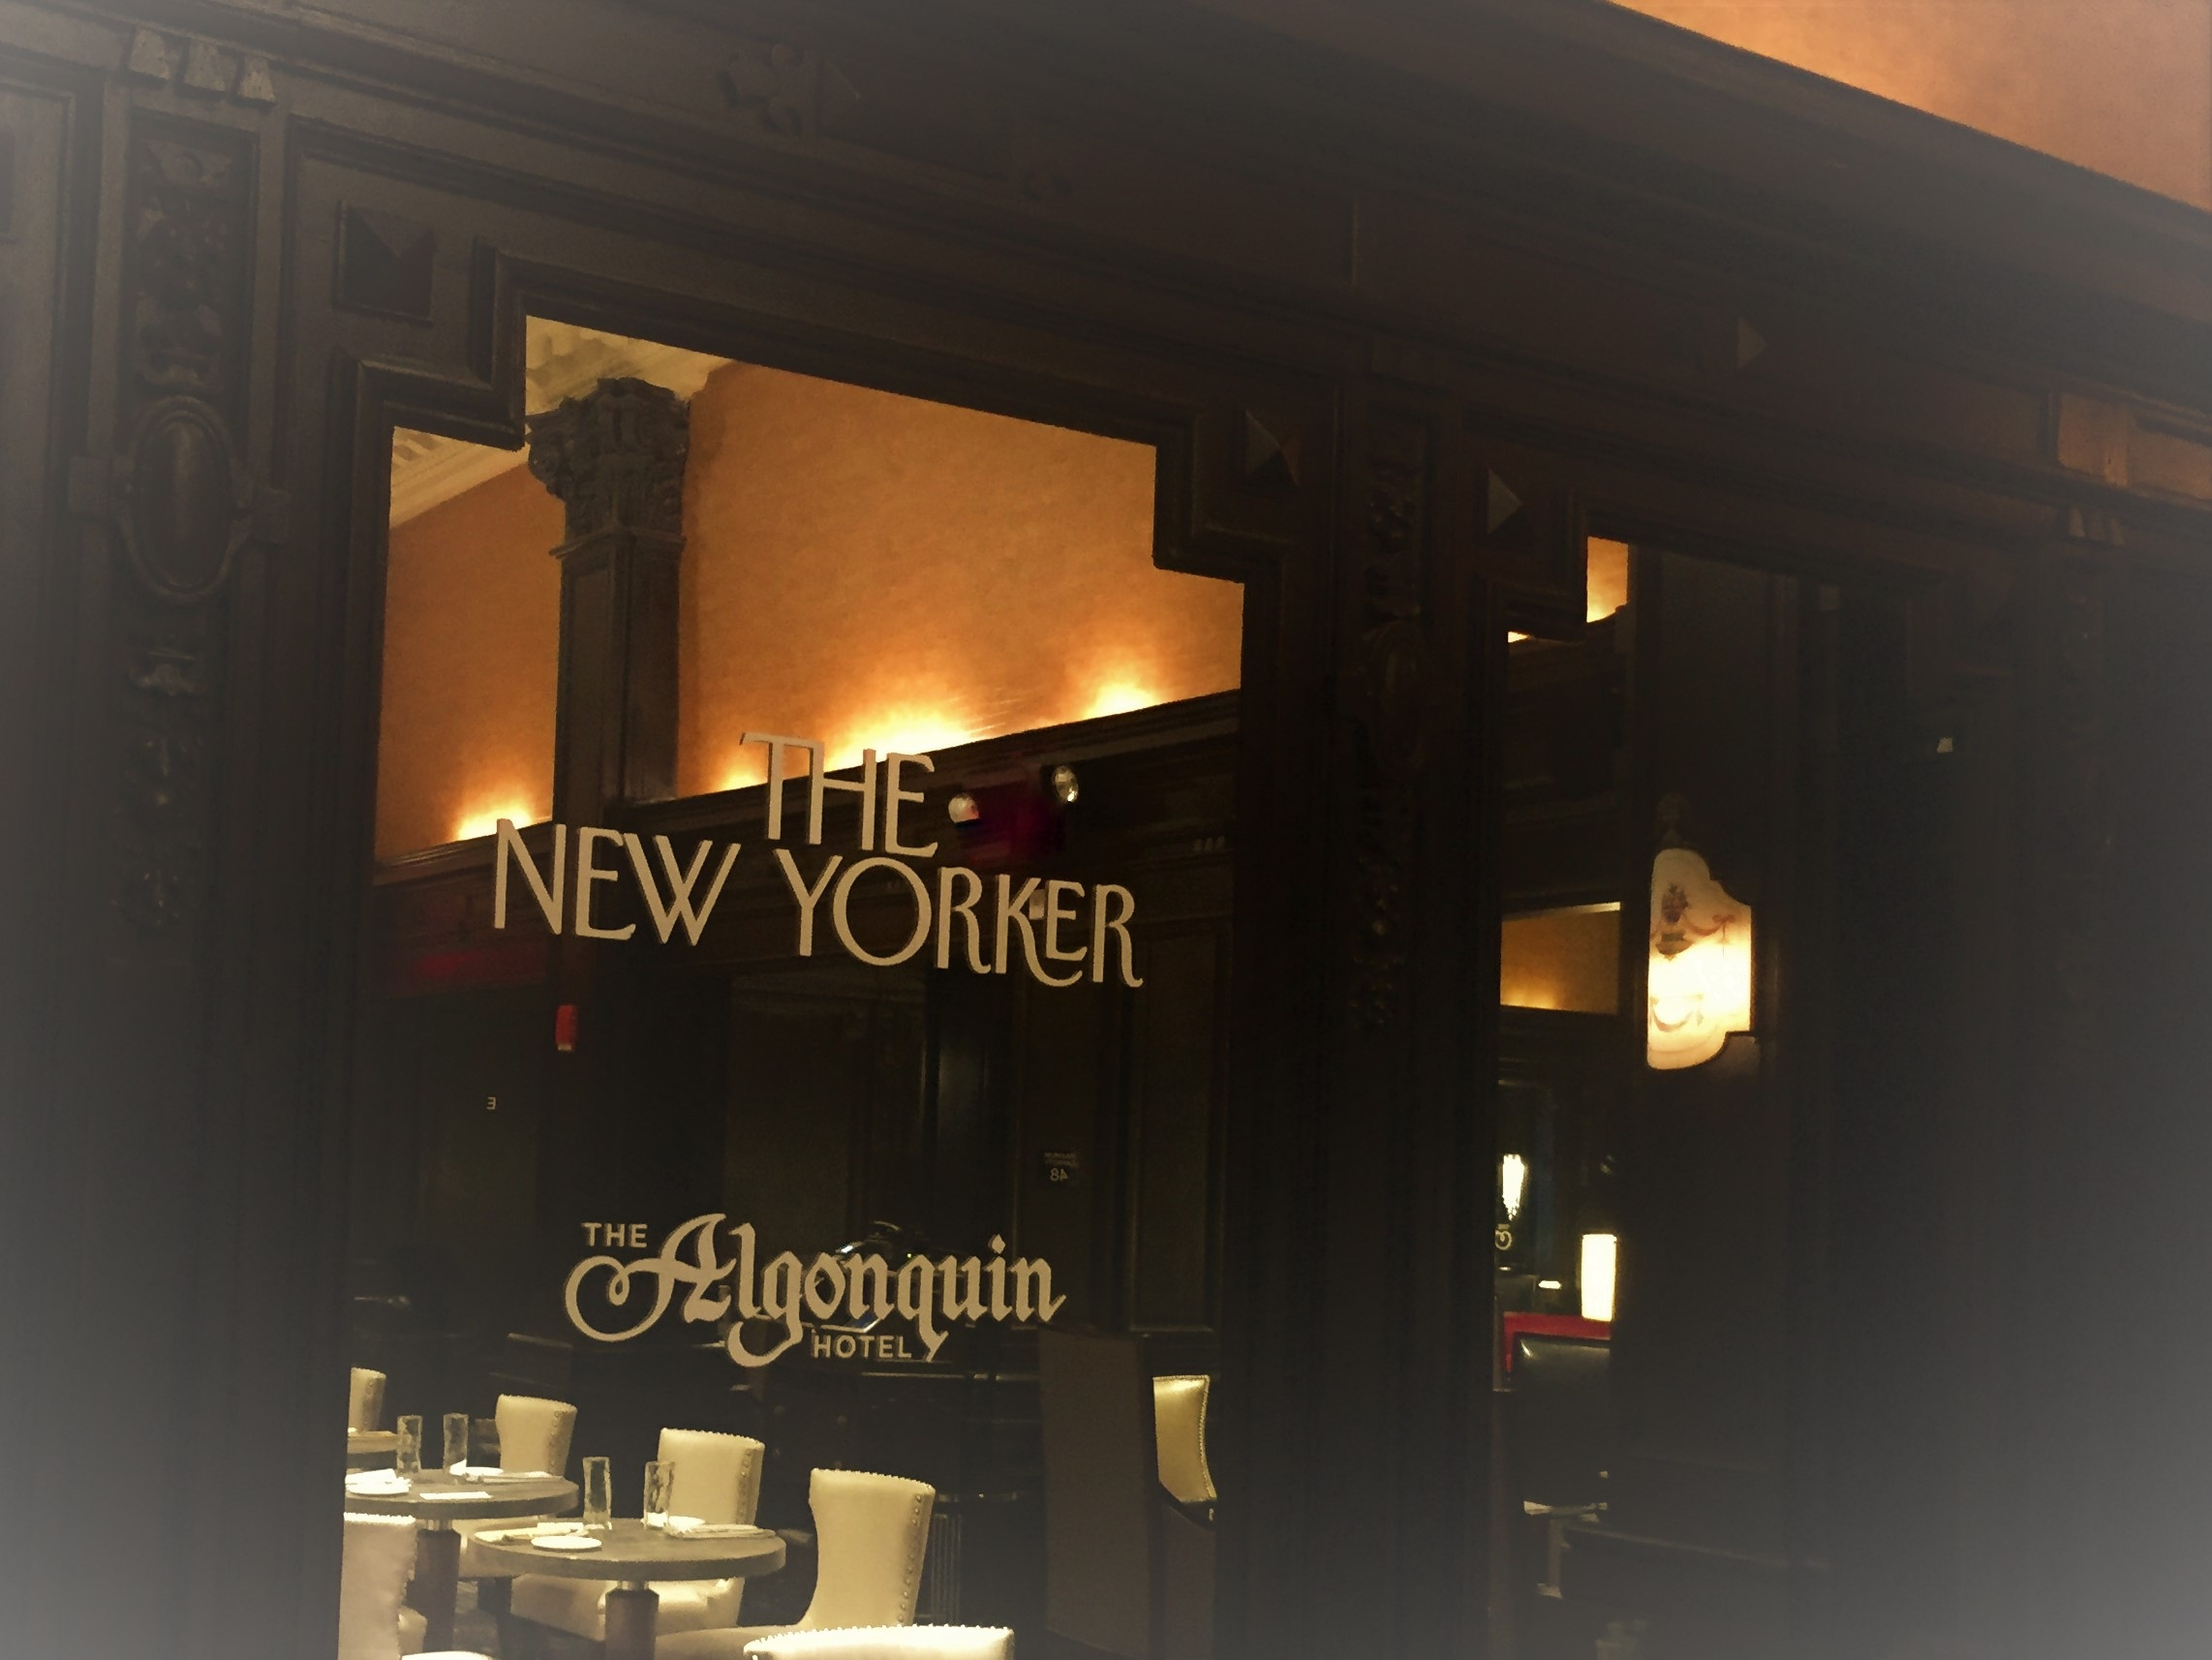 Looking for literary ghosts at the Algonquin Hotel in New York City. Photo credit: M. Ciavardini